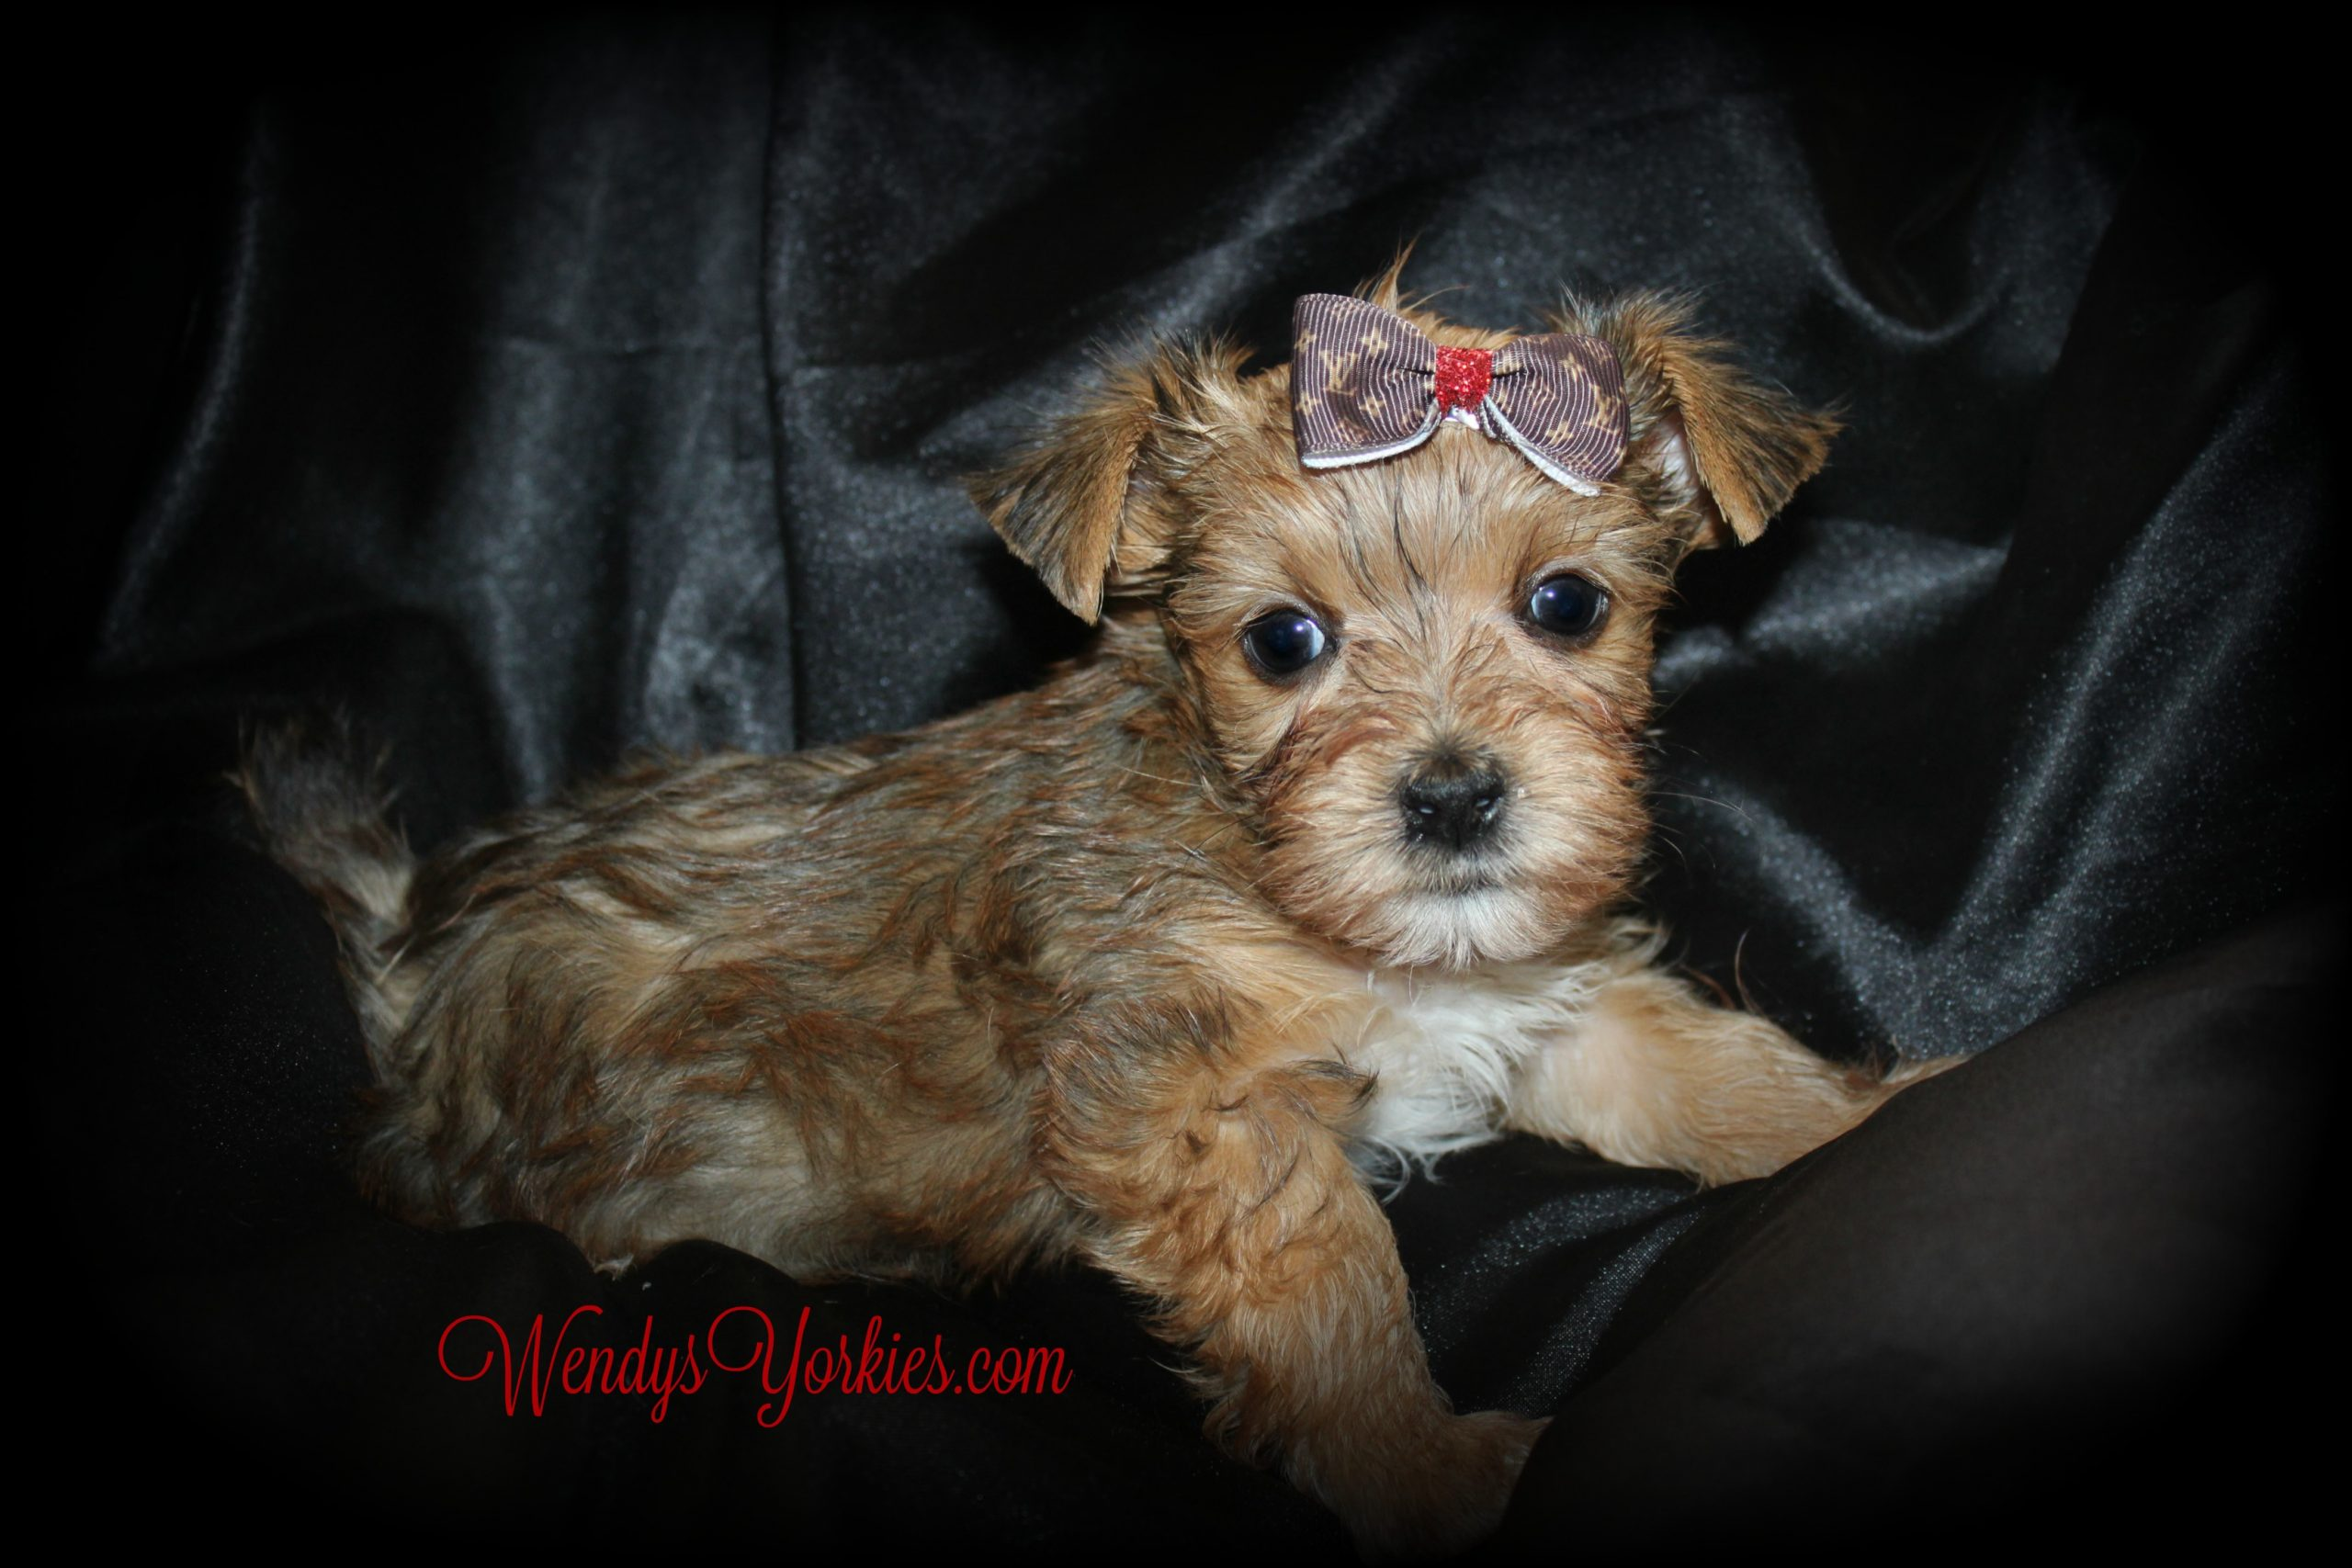 Blonde Yorkie puppy for sale, River, WendysYorkies.com